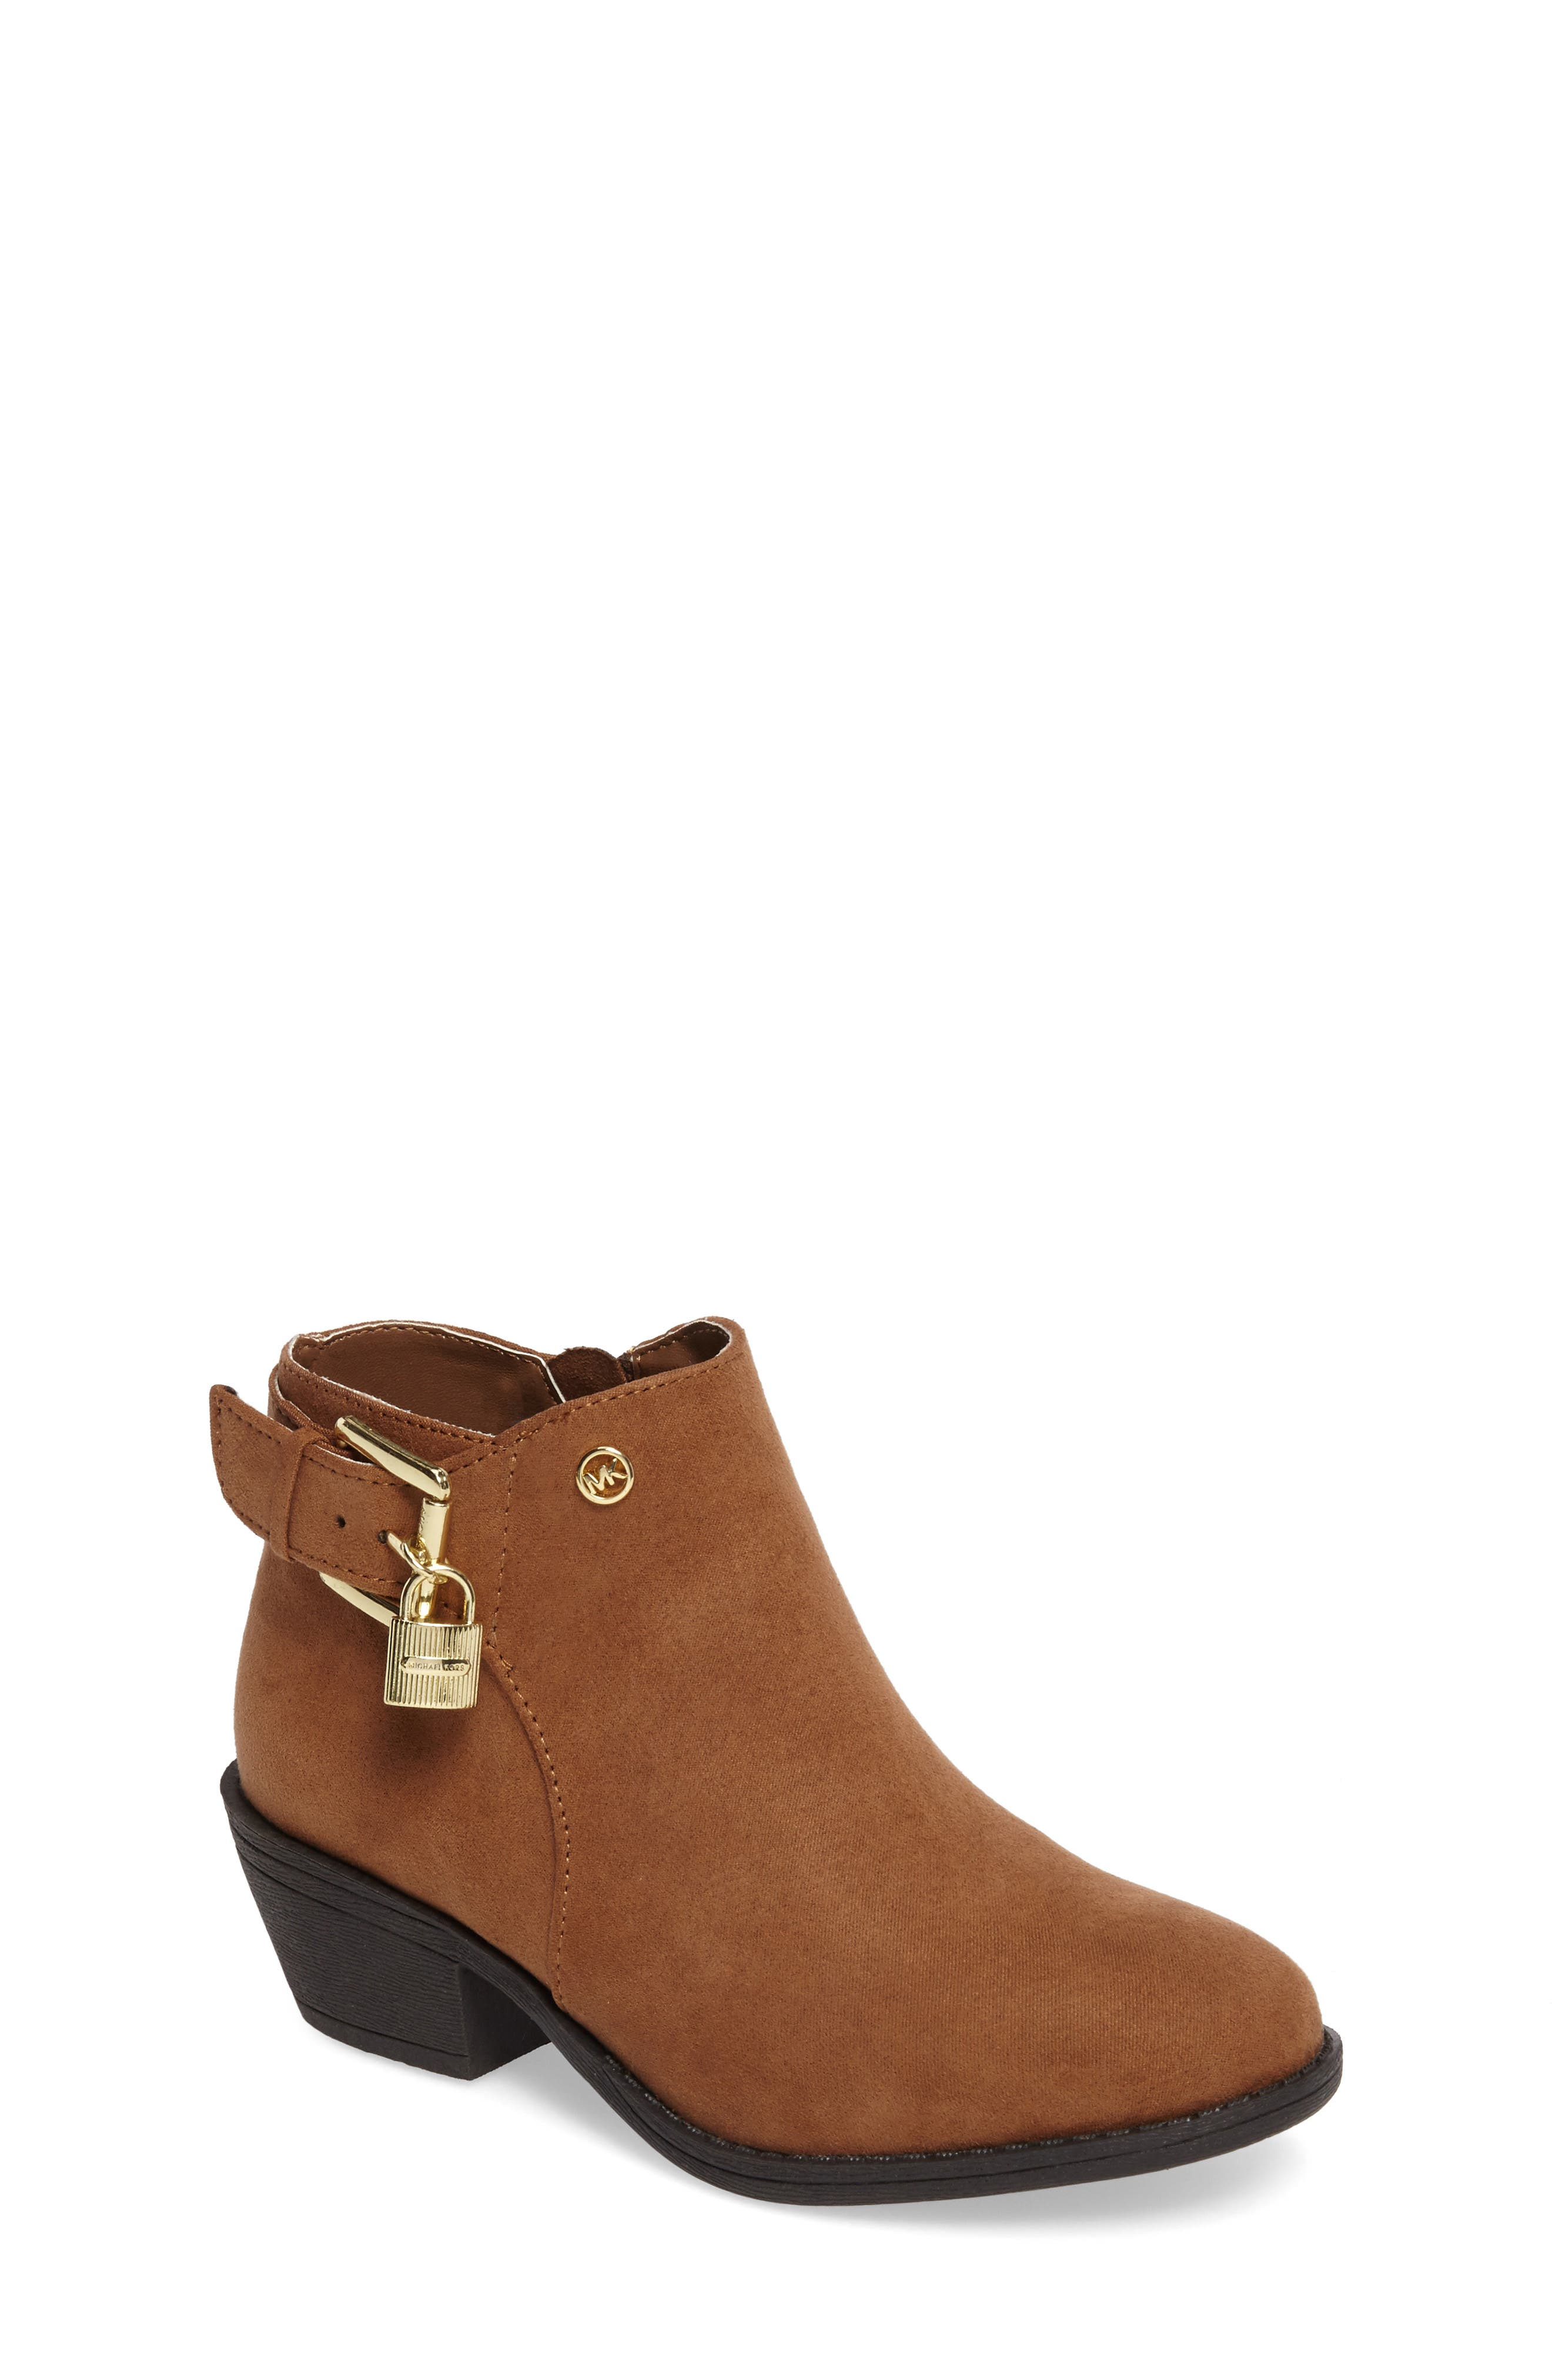 Fia Shine Buckle Strap Bootie,                             Main thumbnail 1, color,                             Caramel Micro